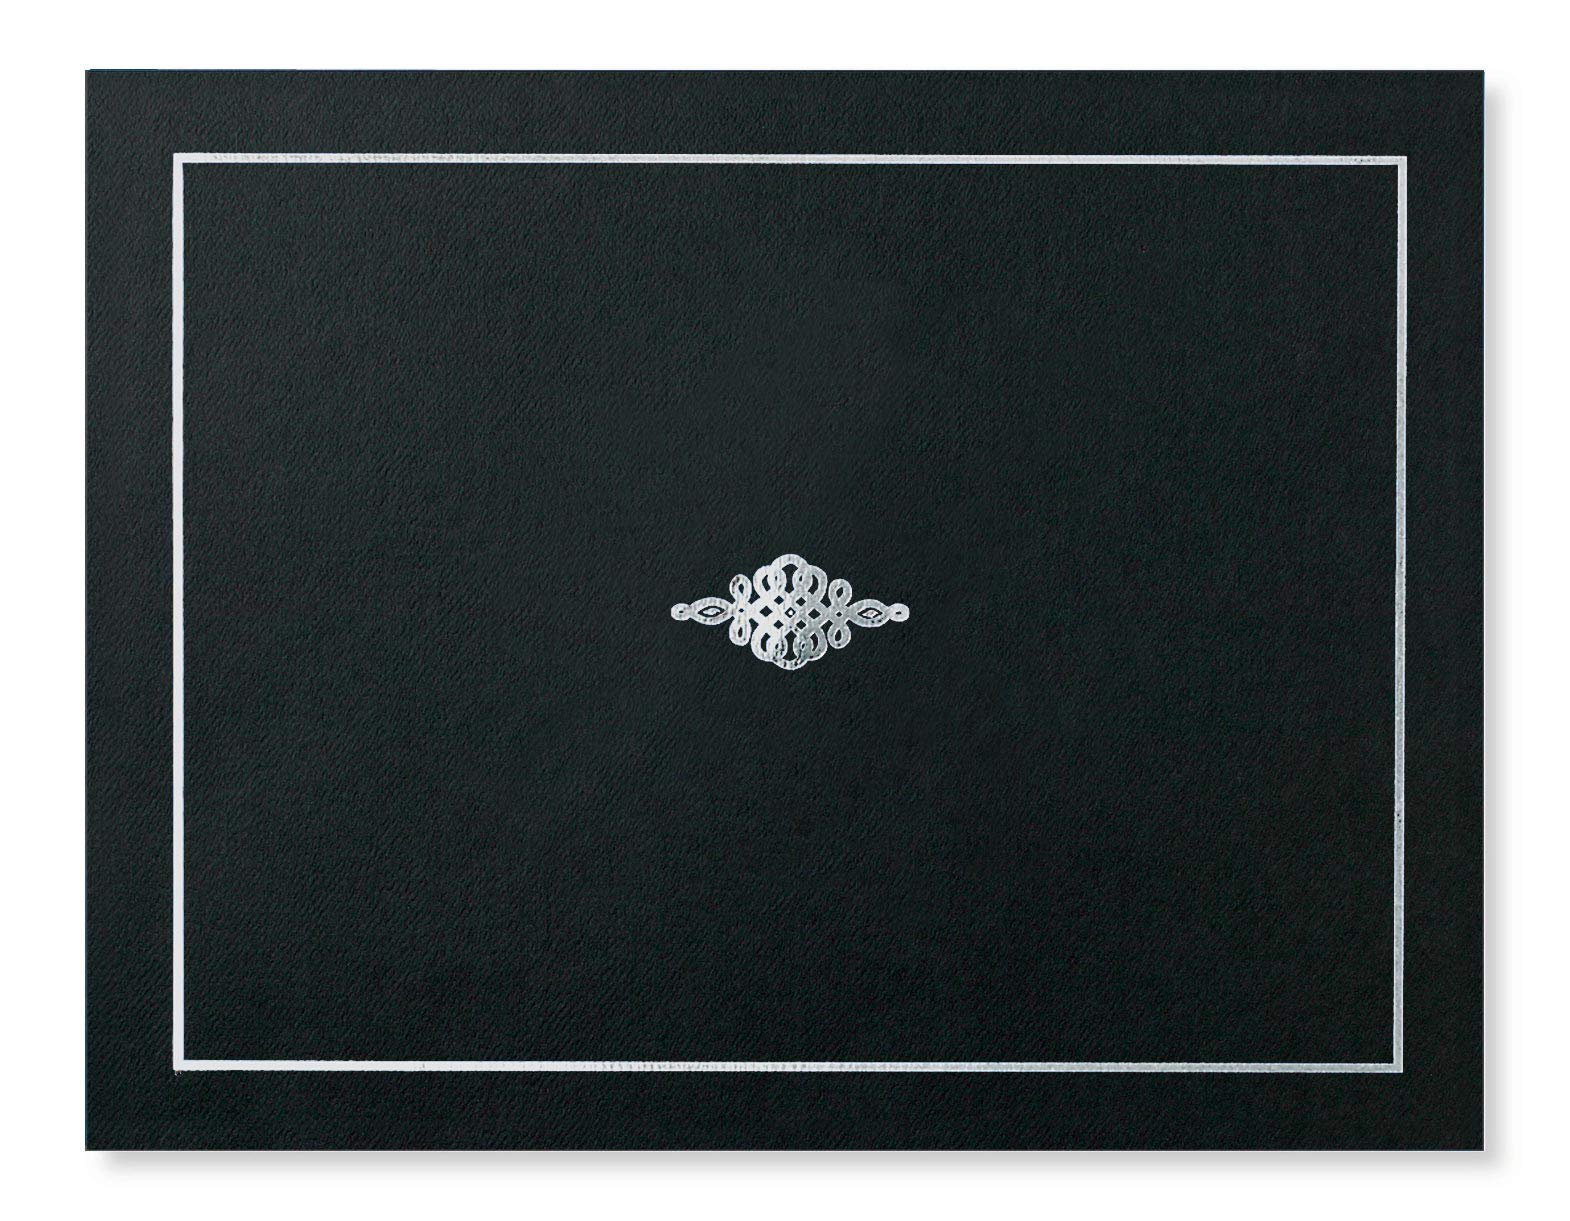 Black Certificate Jacket with Silver Foil Crest, 10 Count